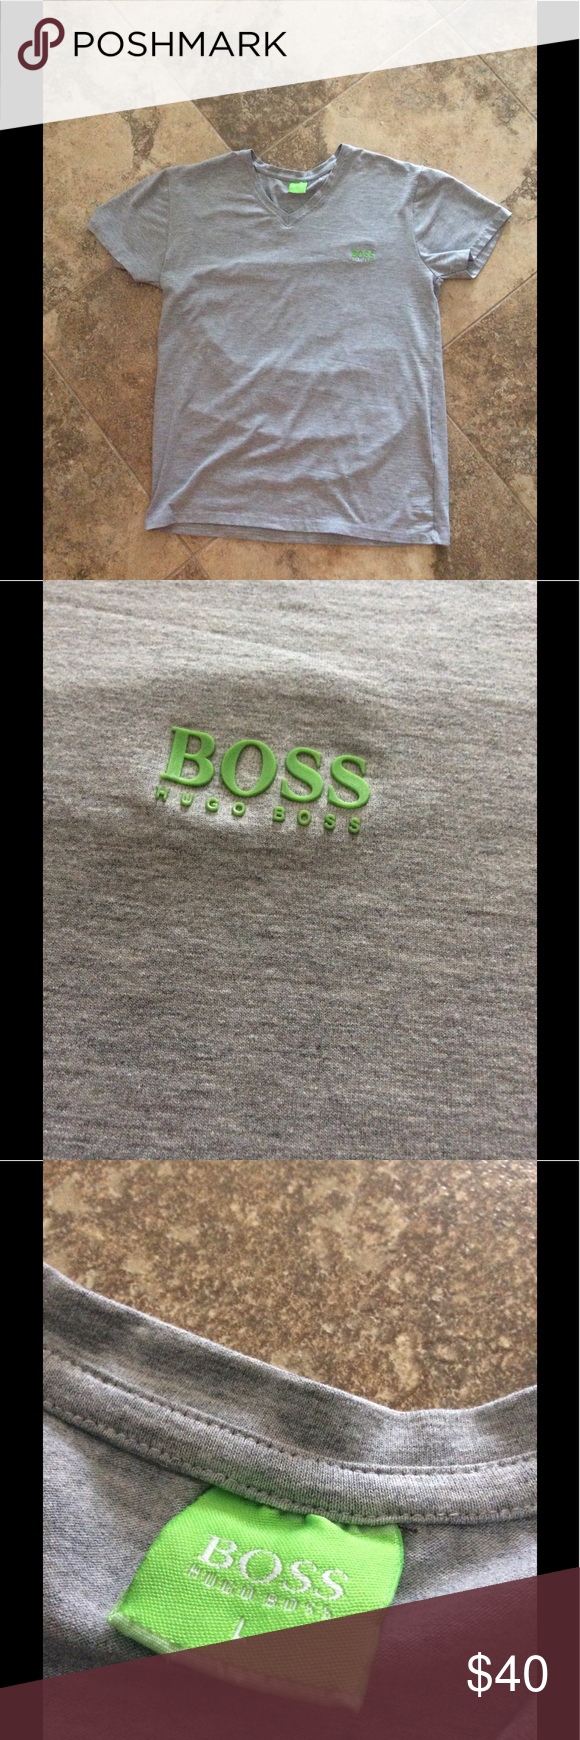 Hugo Boss V-Neck Tee Size Large A very nice basic tee, has been worn, costs about $80 at hugoboss.com, cop this piece before it goes! Hugo Boss Shirts Tees - Short Sleeve